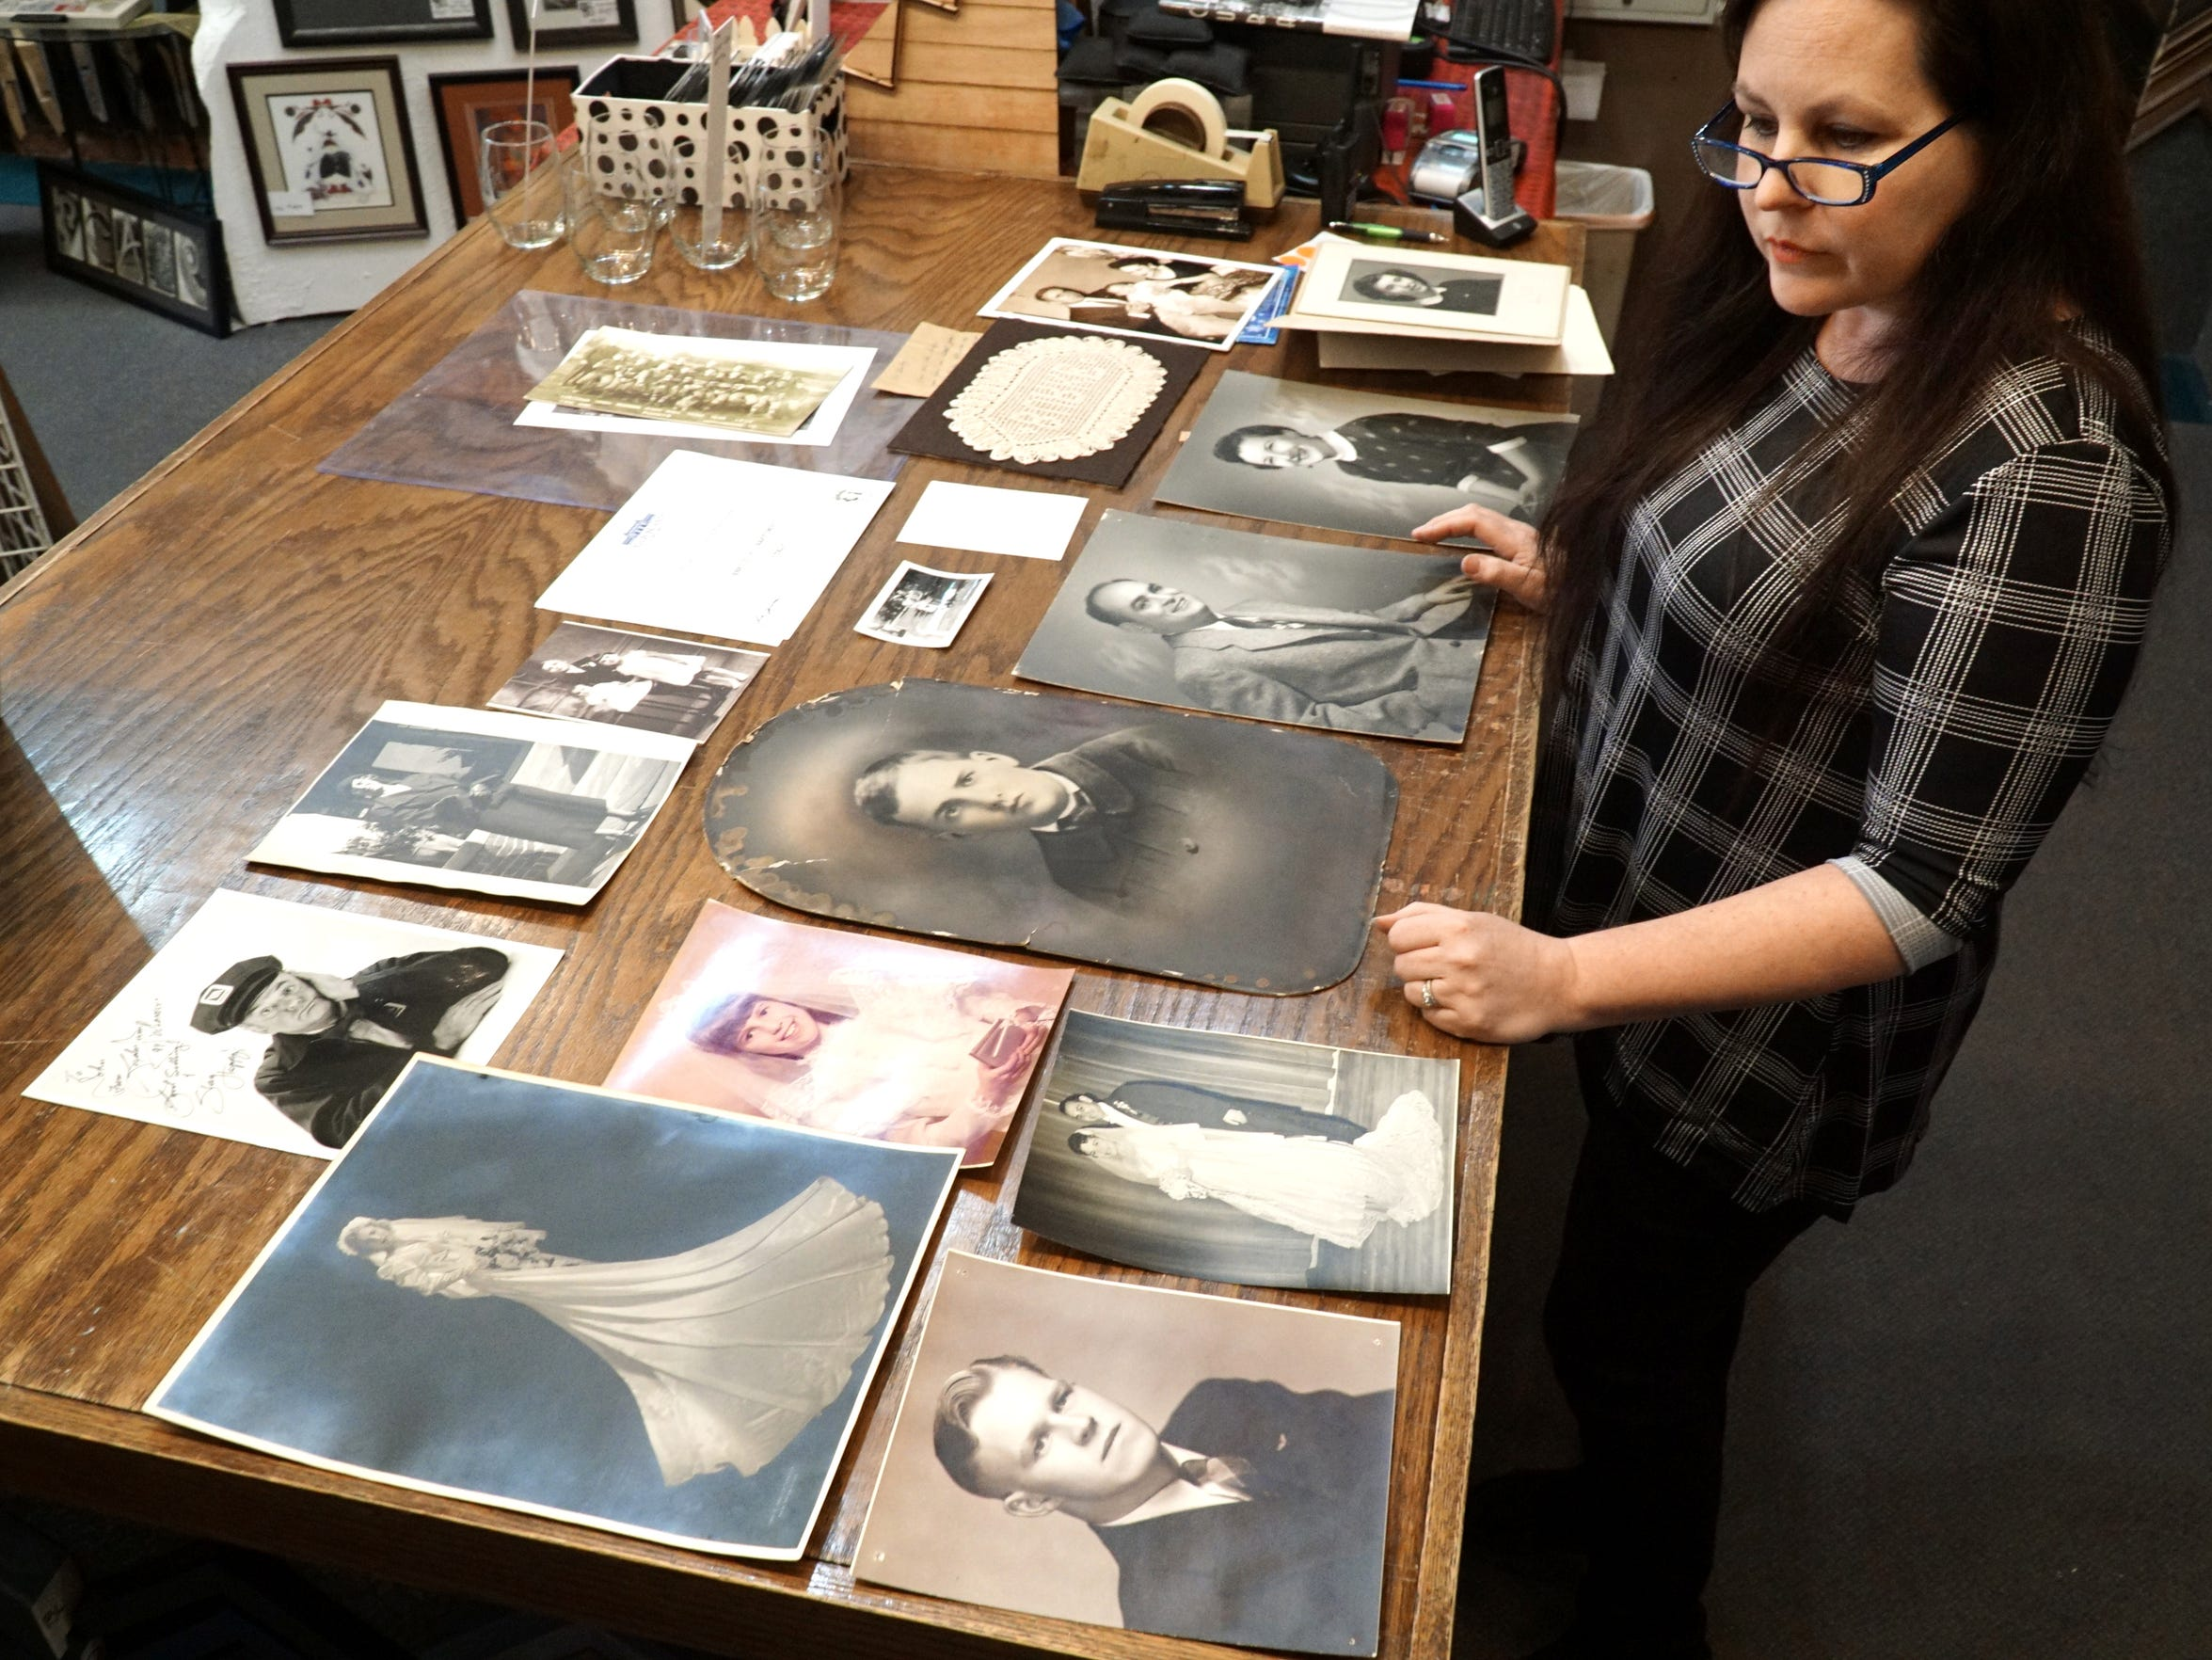 Cindy Eckley places some of the many portrait photos left by customers over the decades at Plymouth's Frame Works on Penniman Ave. Through Facebook postings she's attempting to reunite the images with their owners - or decendants of their owners.